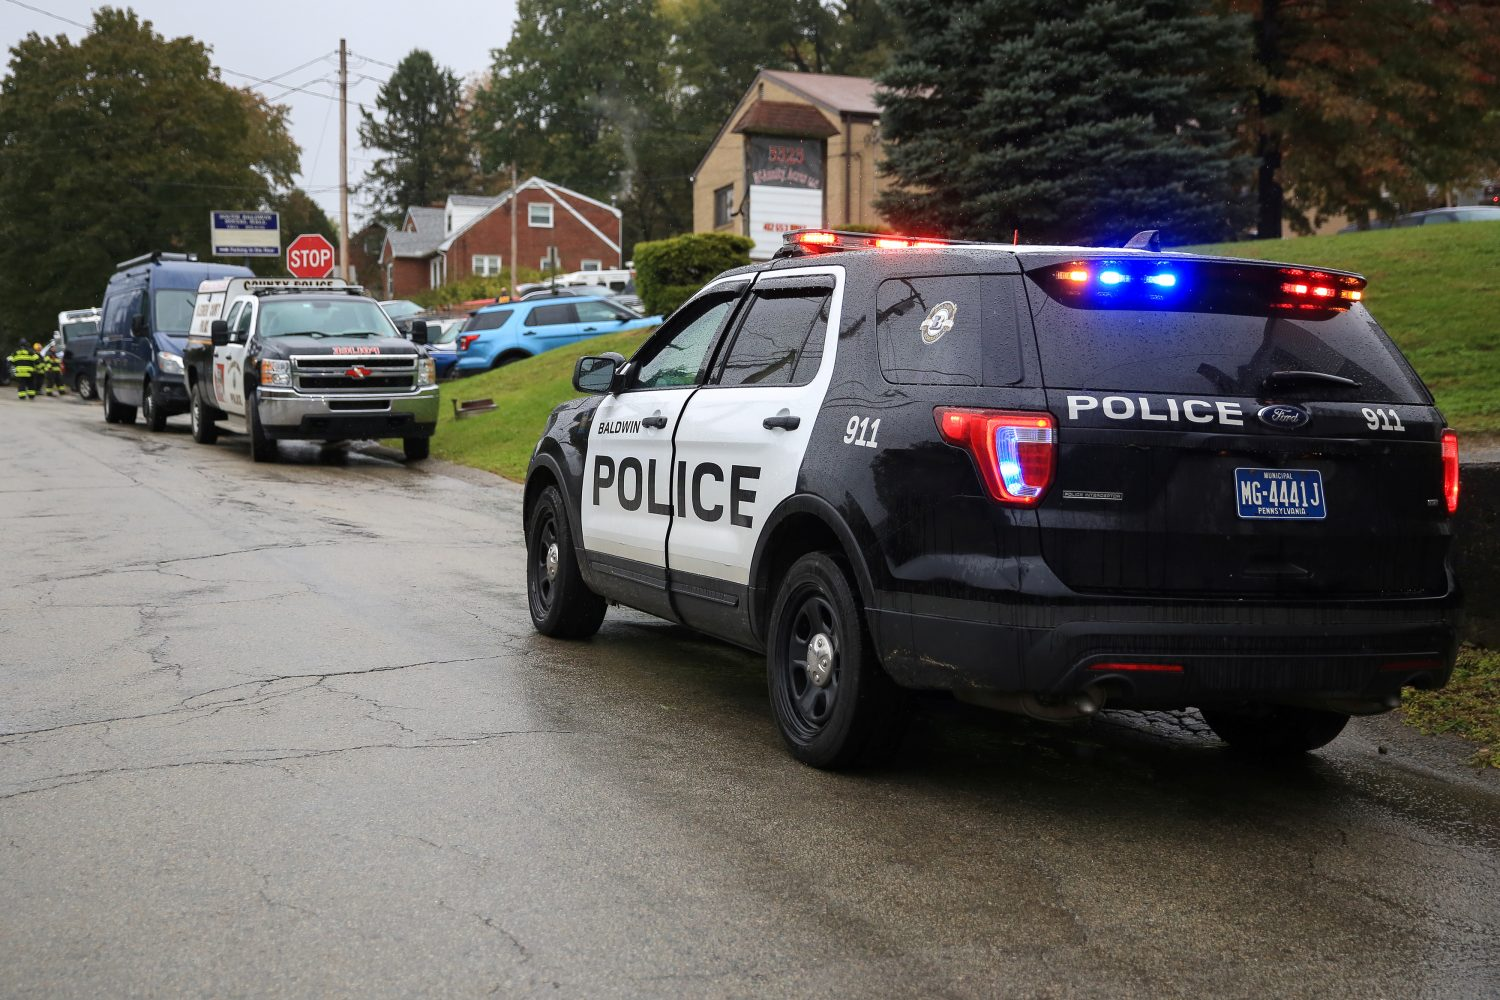 Police vehicles are deployed near the vicinity of the home of Pittsburgh synagogue shooting suspect Robert Bowers' home in Baldwin borough, suburb of Pittsburgh, Pennsylvania, U.S., October 27, 2018. REUTERS/John Altdorfer